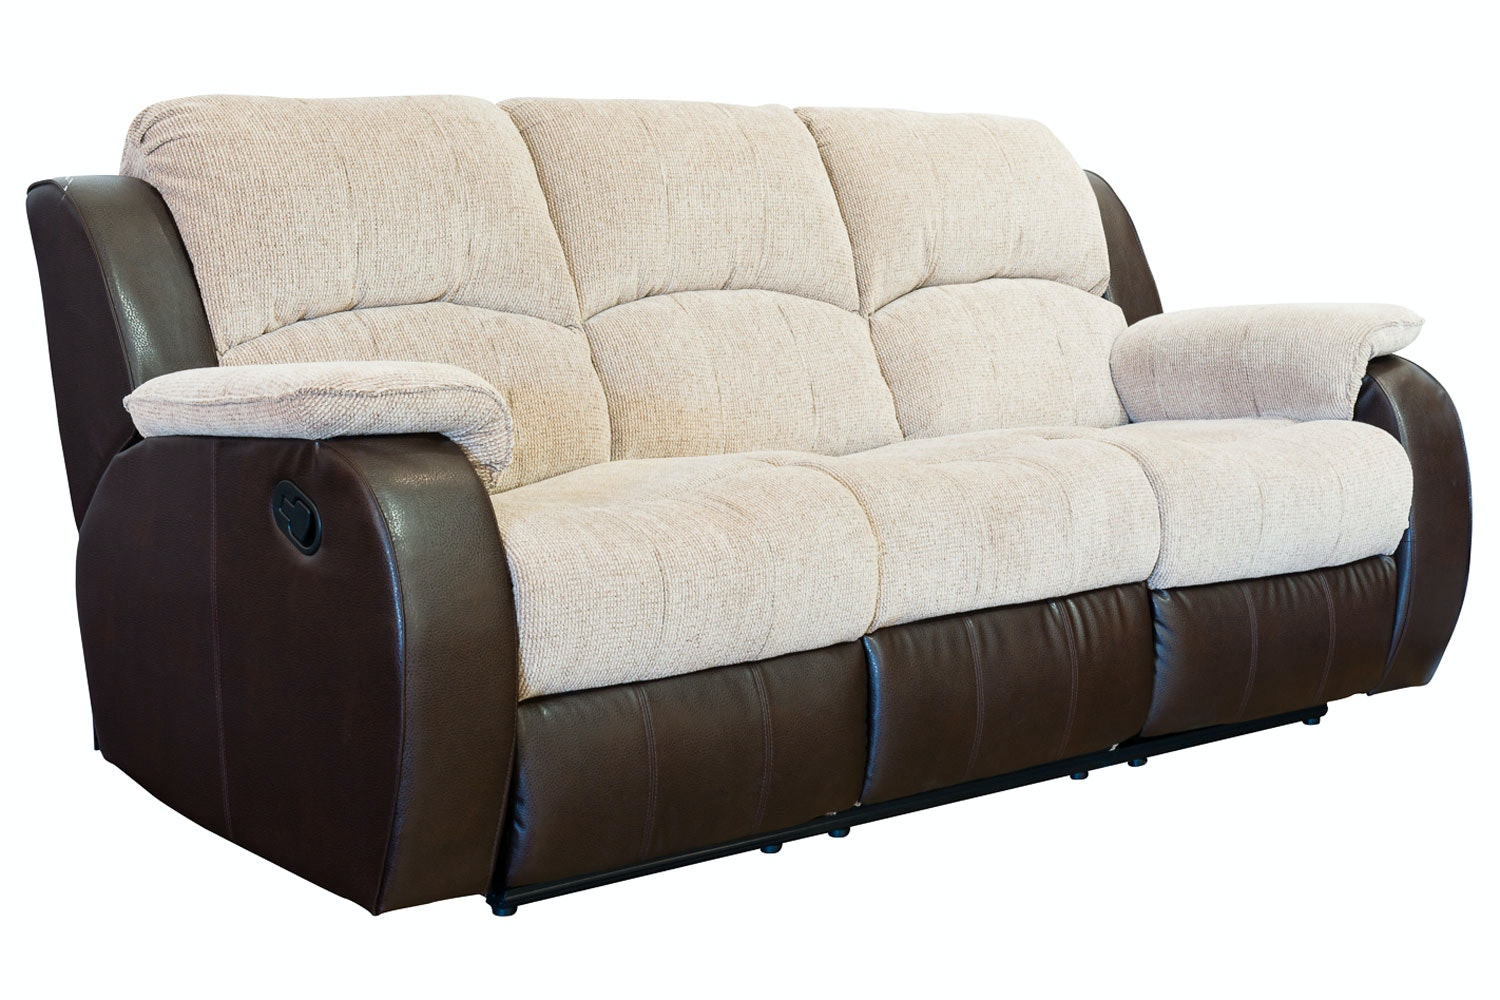 Kayde 3 Seater Recliner Sofa